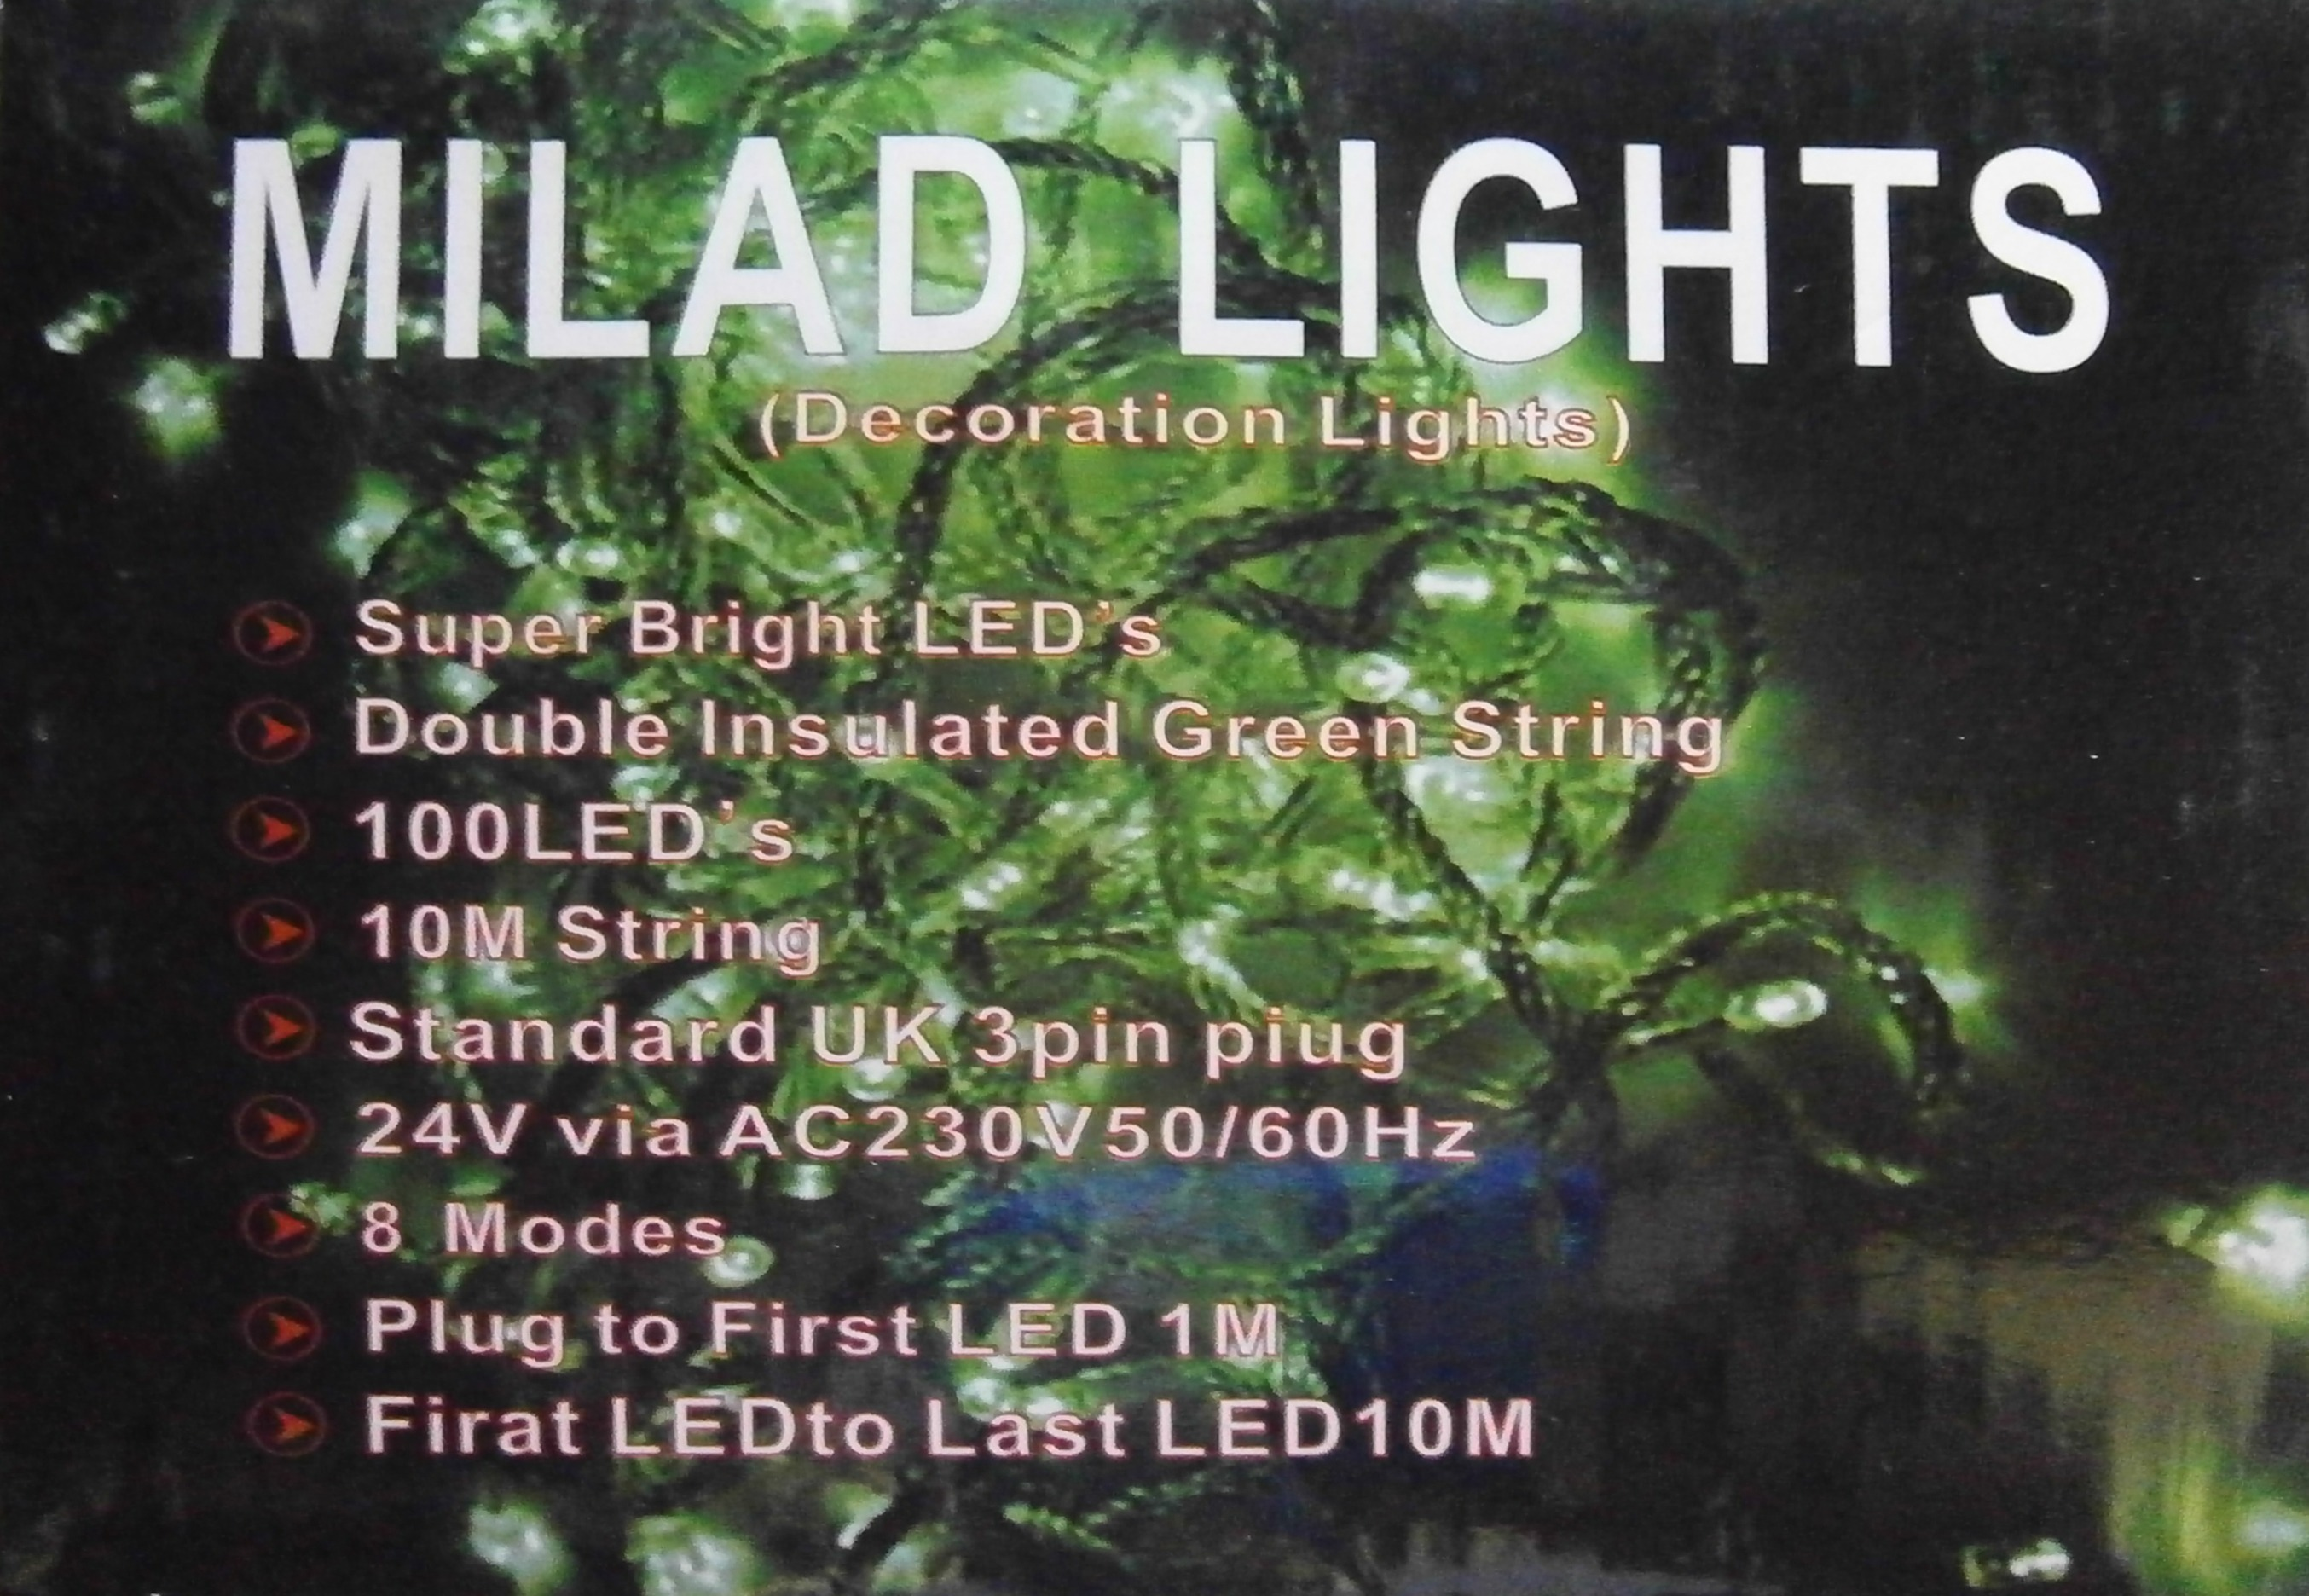 A (100) Green Led Milad Lights